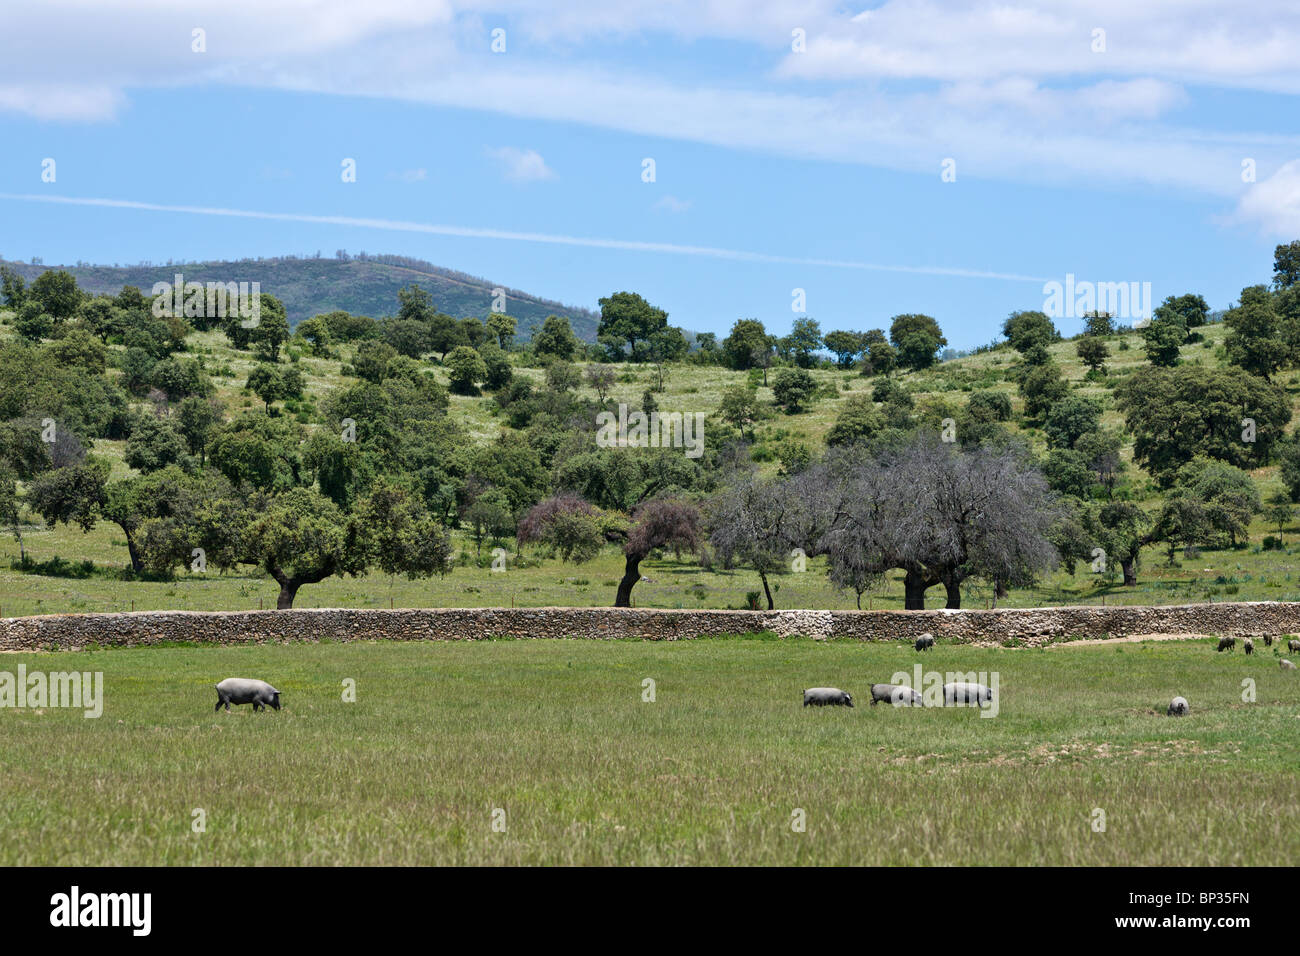 Black pigs grazing in grove of holm oaks. Extremadura, Spain. - Stock Image